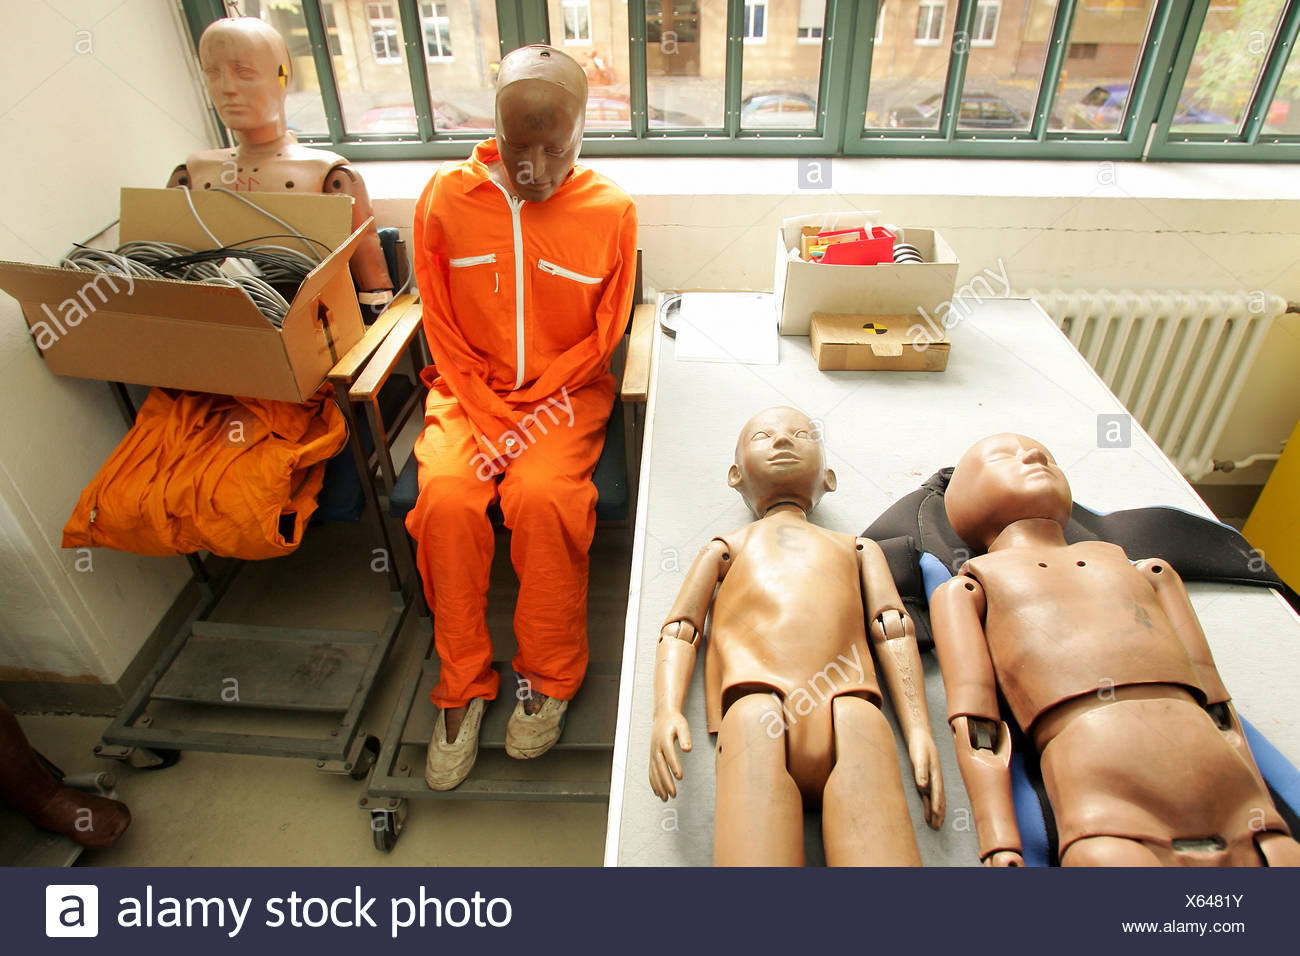 Crash test dummies - Stock Image